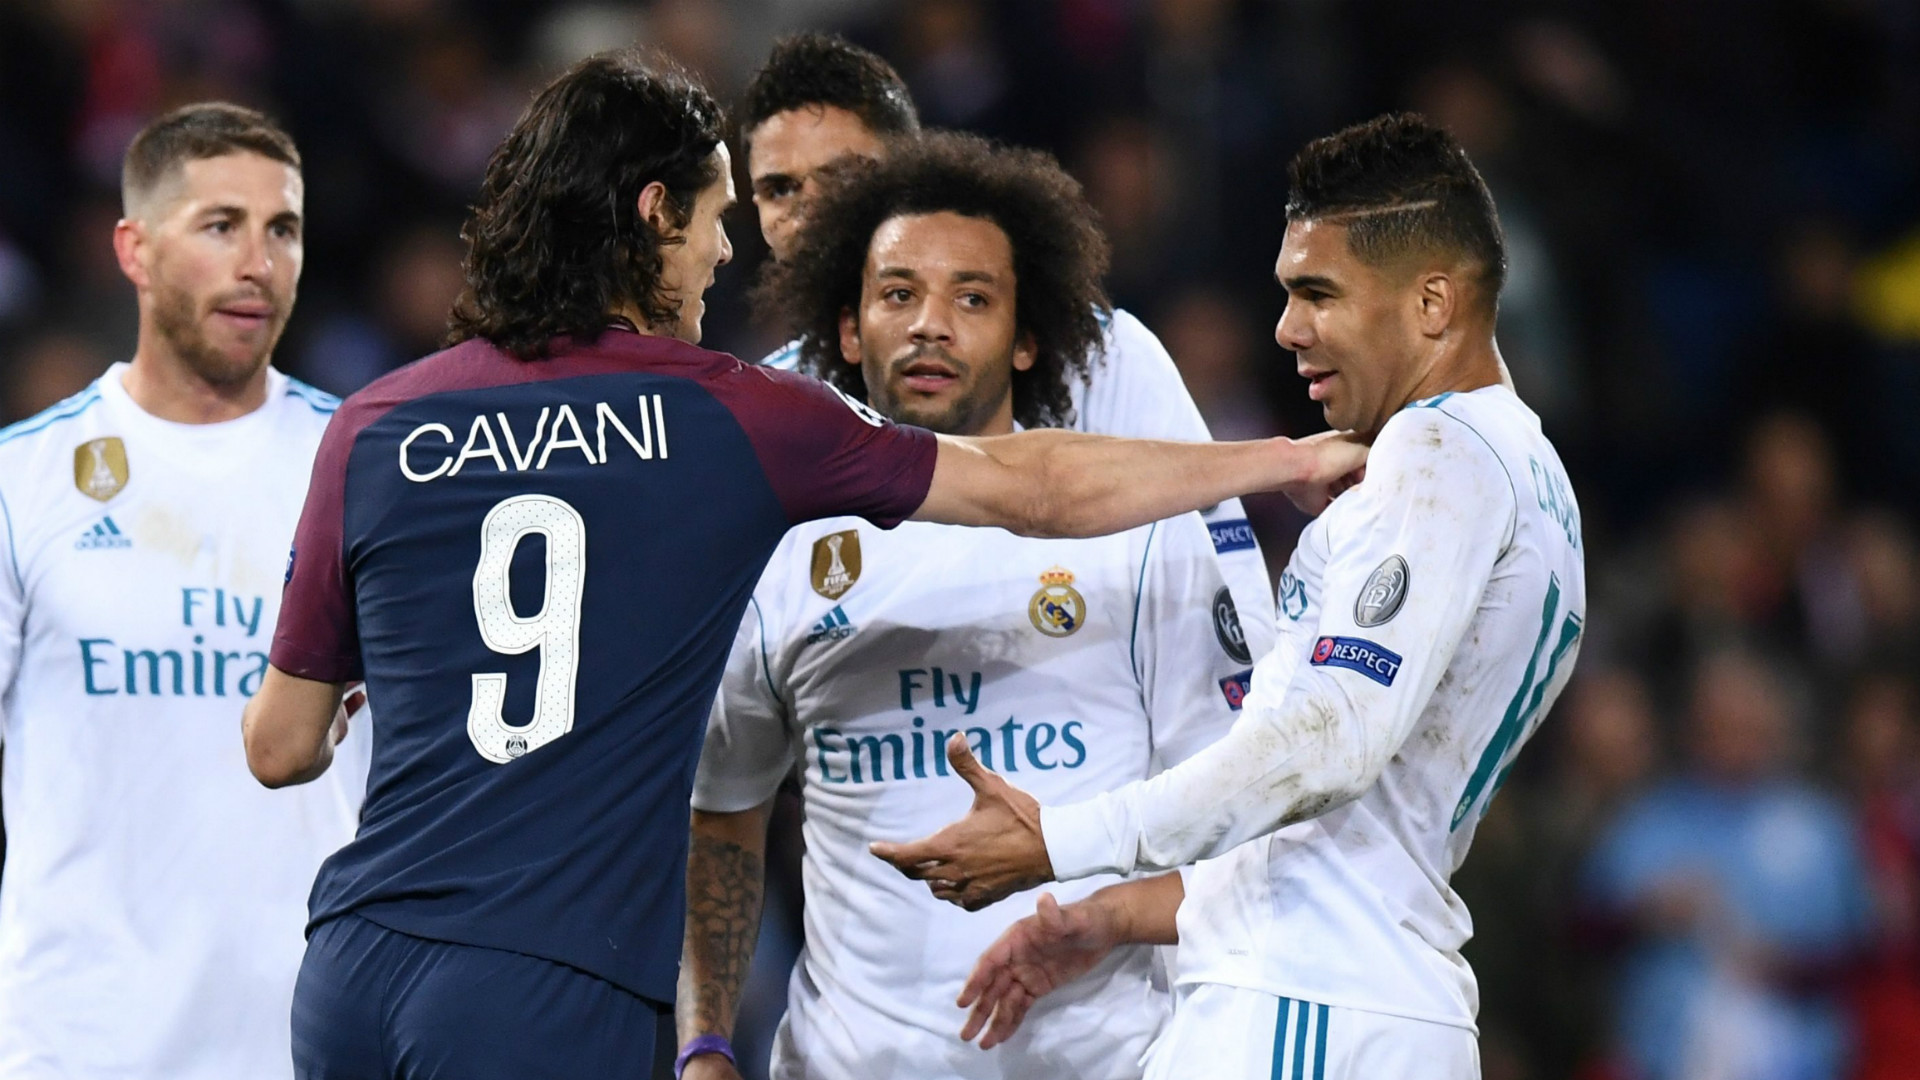 Edinson Cavani Casemiro PSG Paris Saint Germain Real Madrid